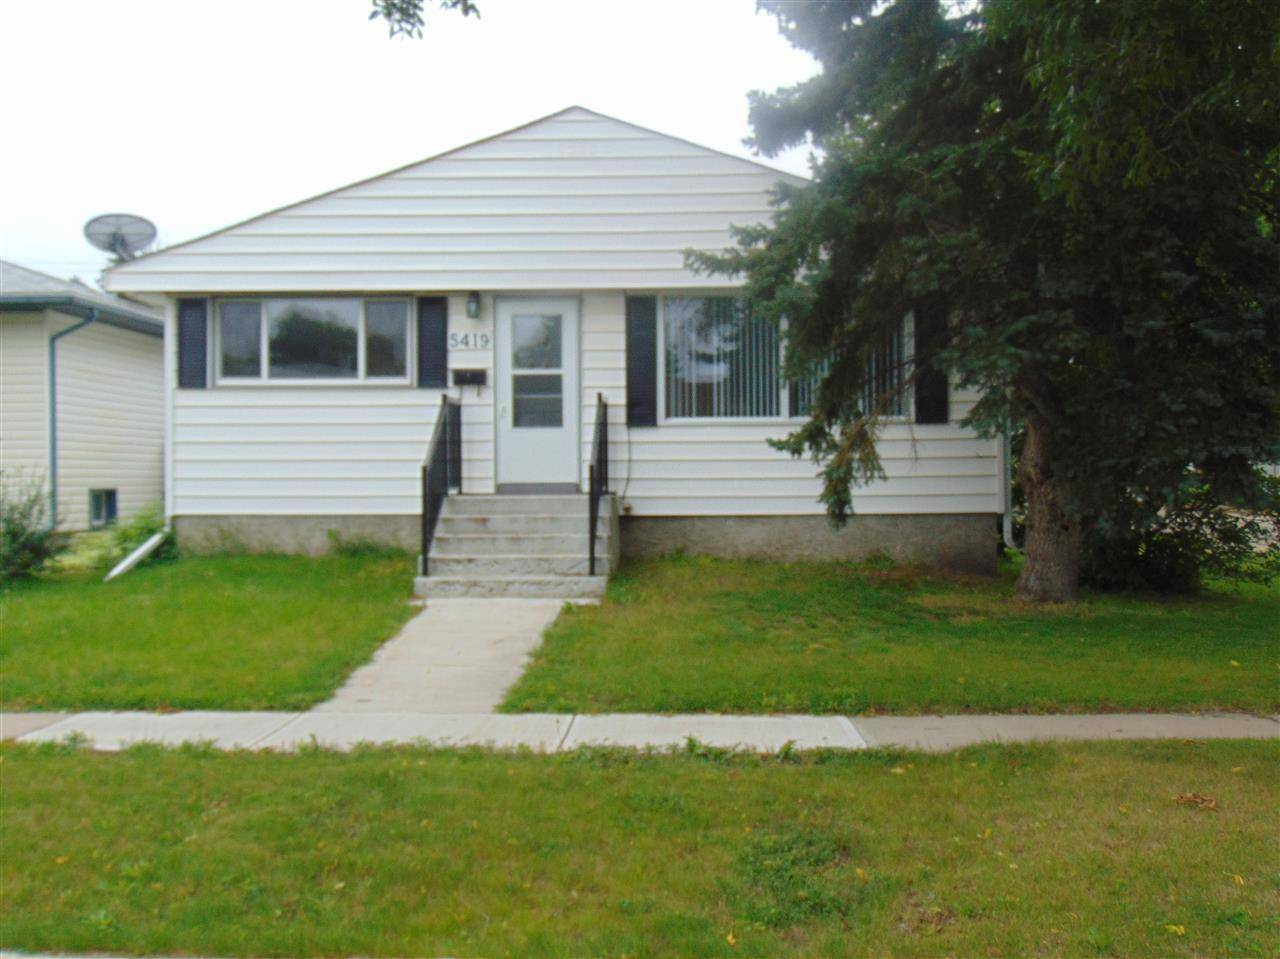 House for sale at 5419 51 Ave Wetaskiwin Alberta - MLS: E4169380